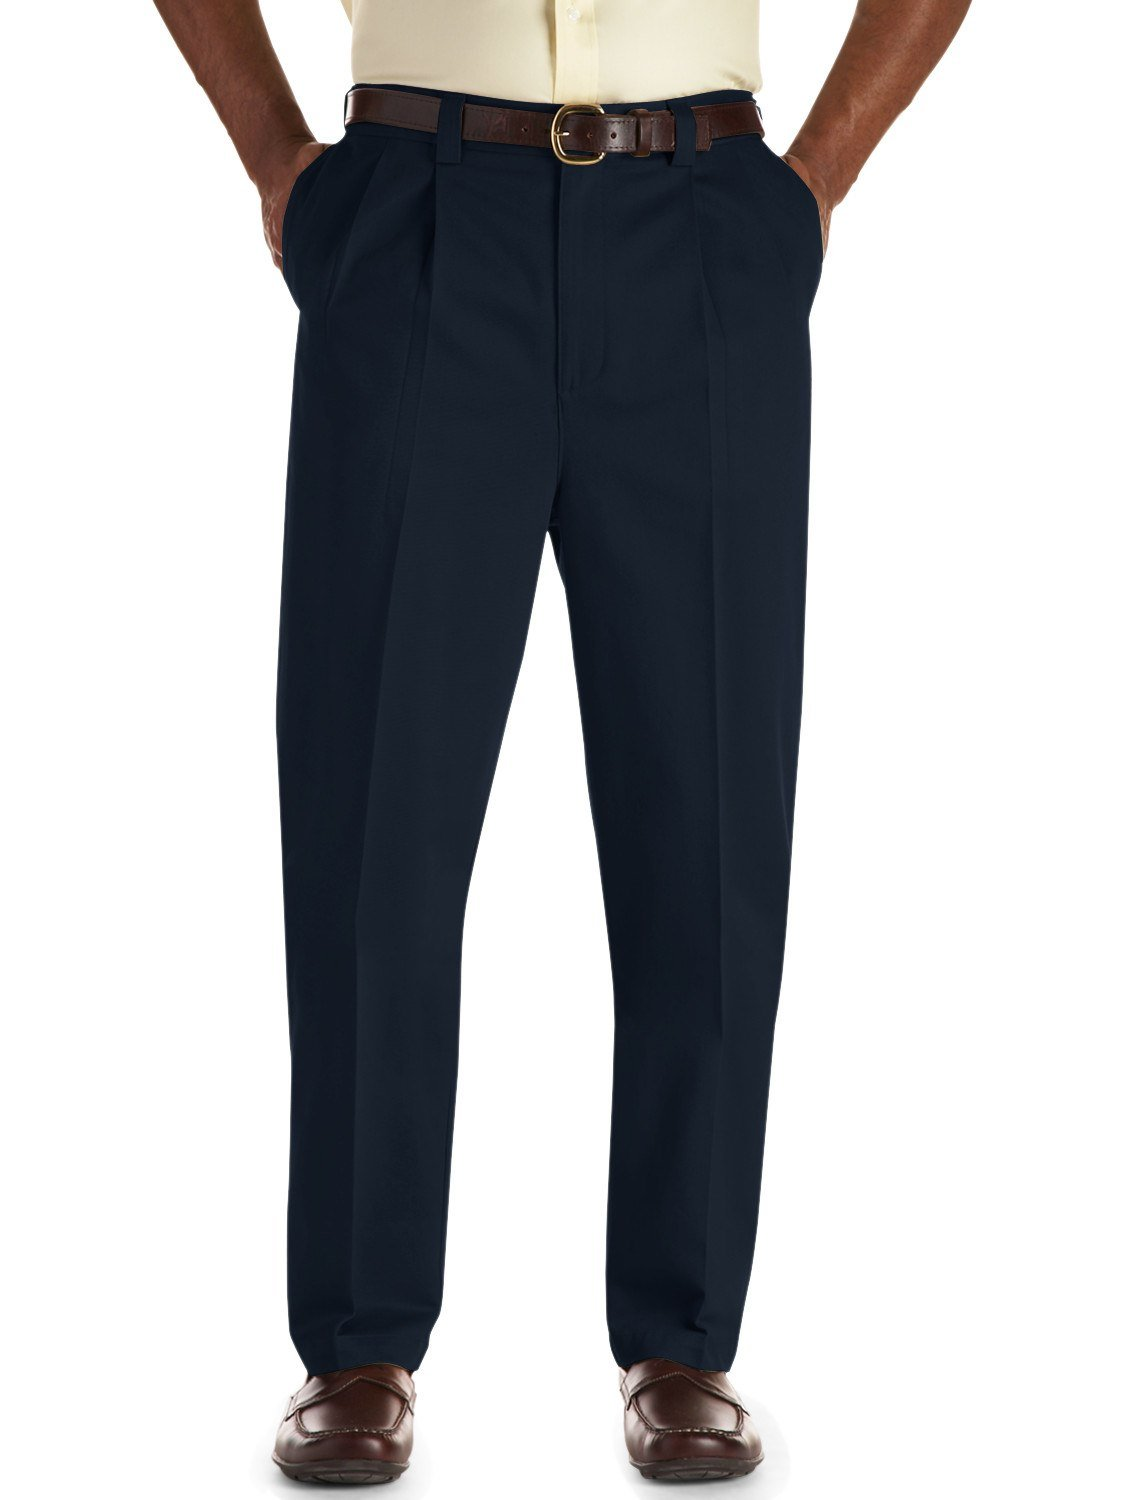 Oak Hill by DXL Big and Tall Pleated Premium Stretch Twill Pants, Navy, 48R 28